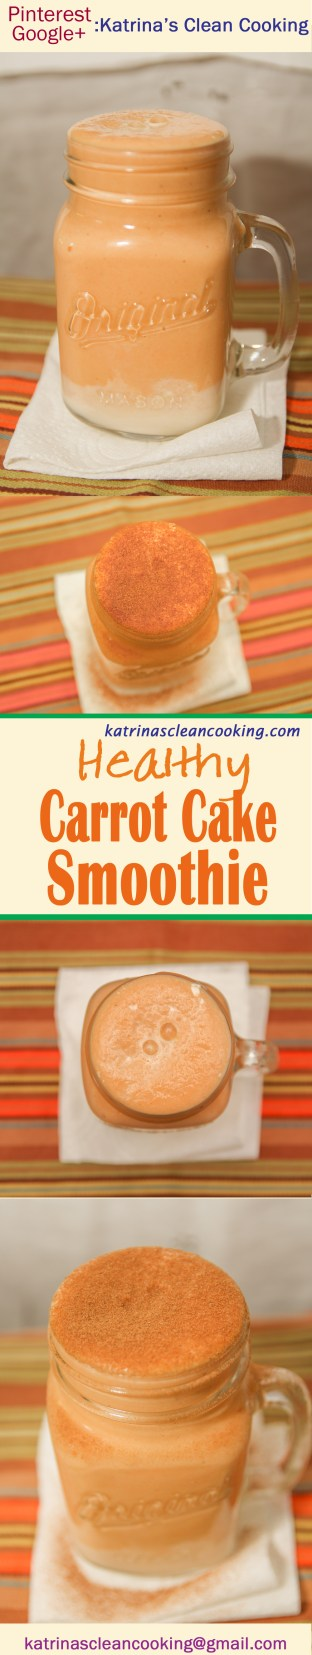 Healthy Carrot Cake Smoothie